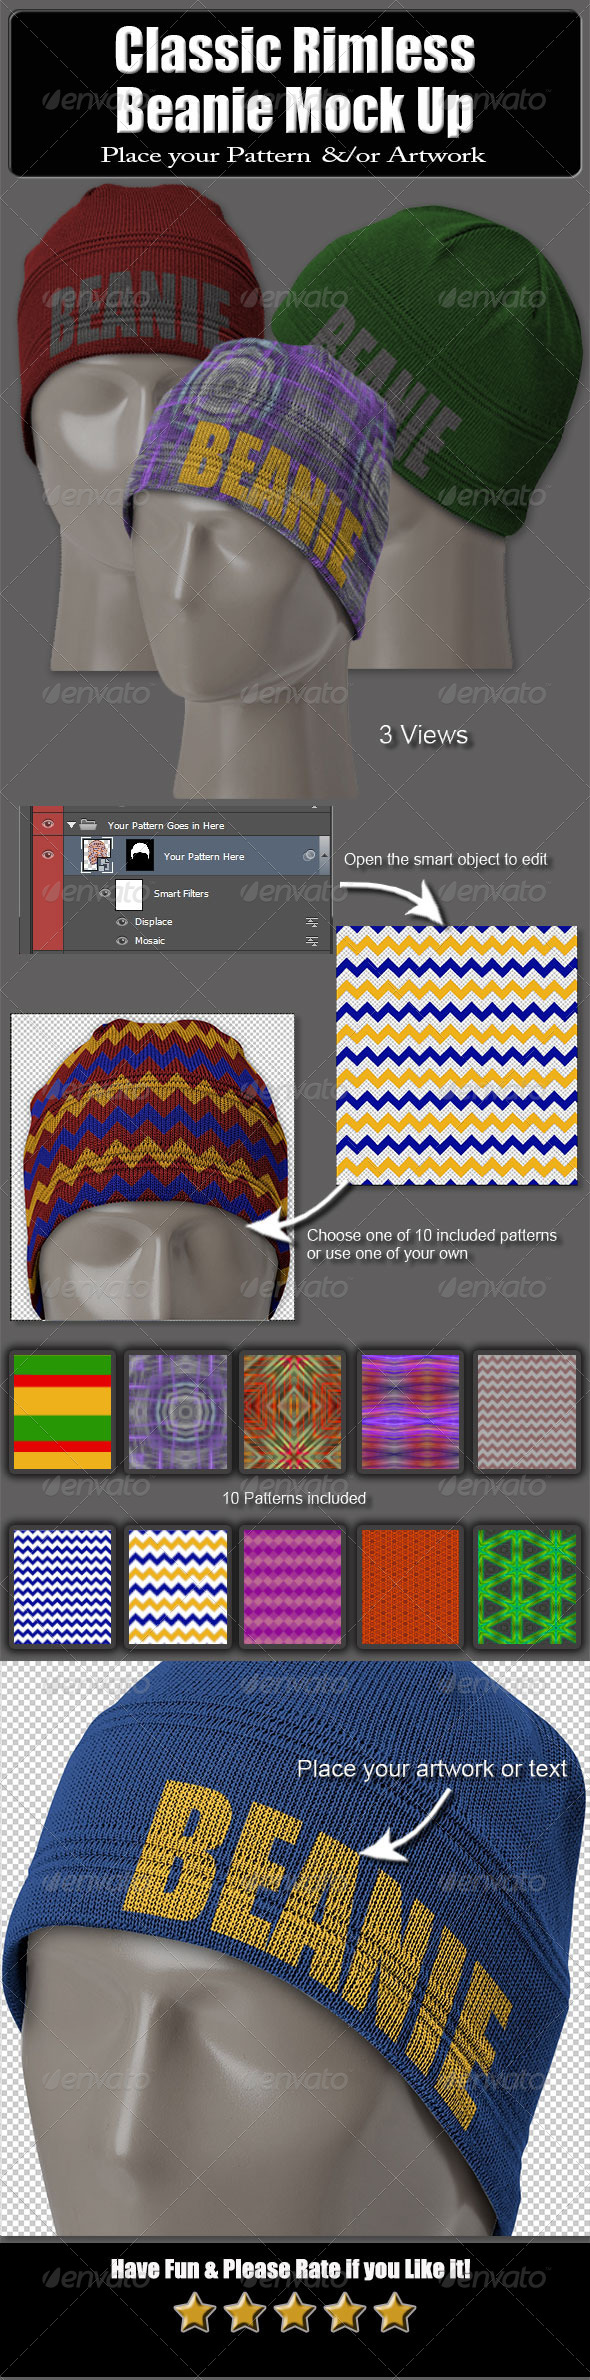 GraphicRiver Classic Rimless Beanie Mock Up 6290195